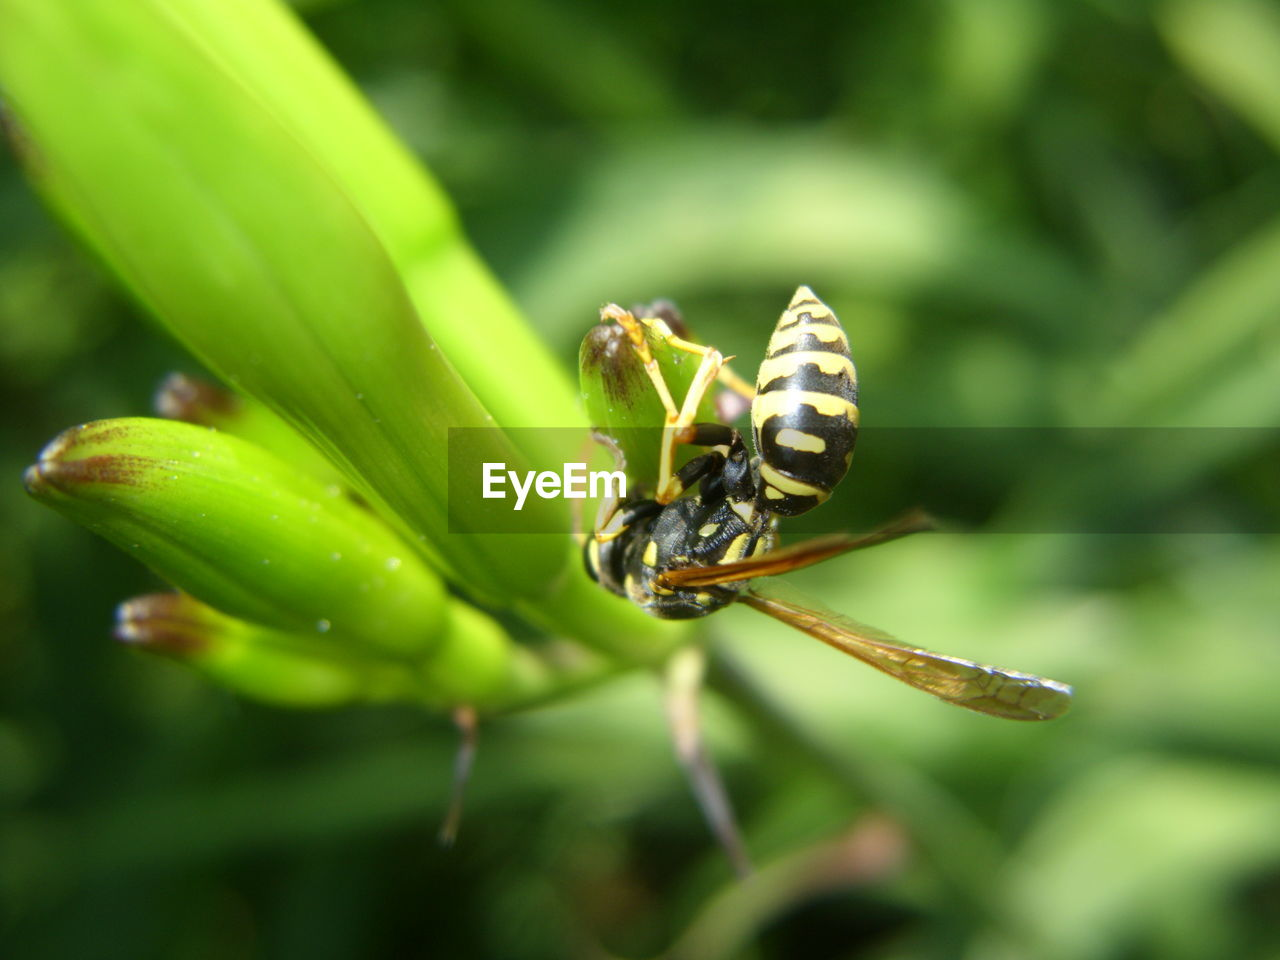 insect, animal themes, animals in the wild, one animal, green color, nature, animal wildlife, day, close-up, no people, outdoors, plant, growth, beauty in nature, bee